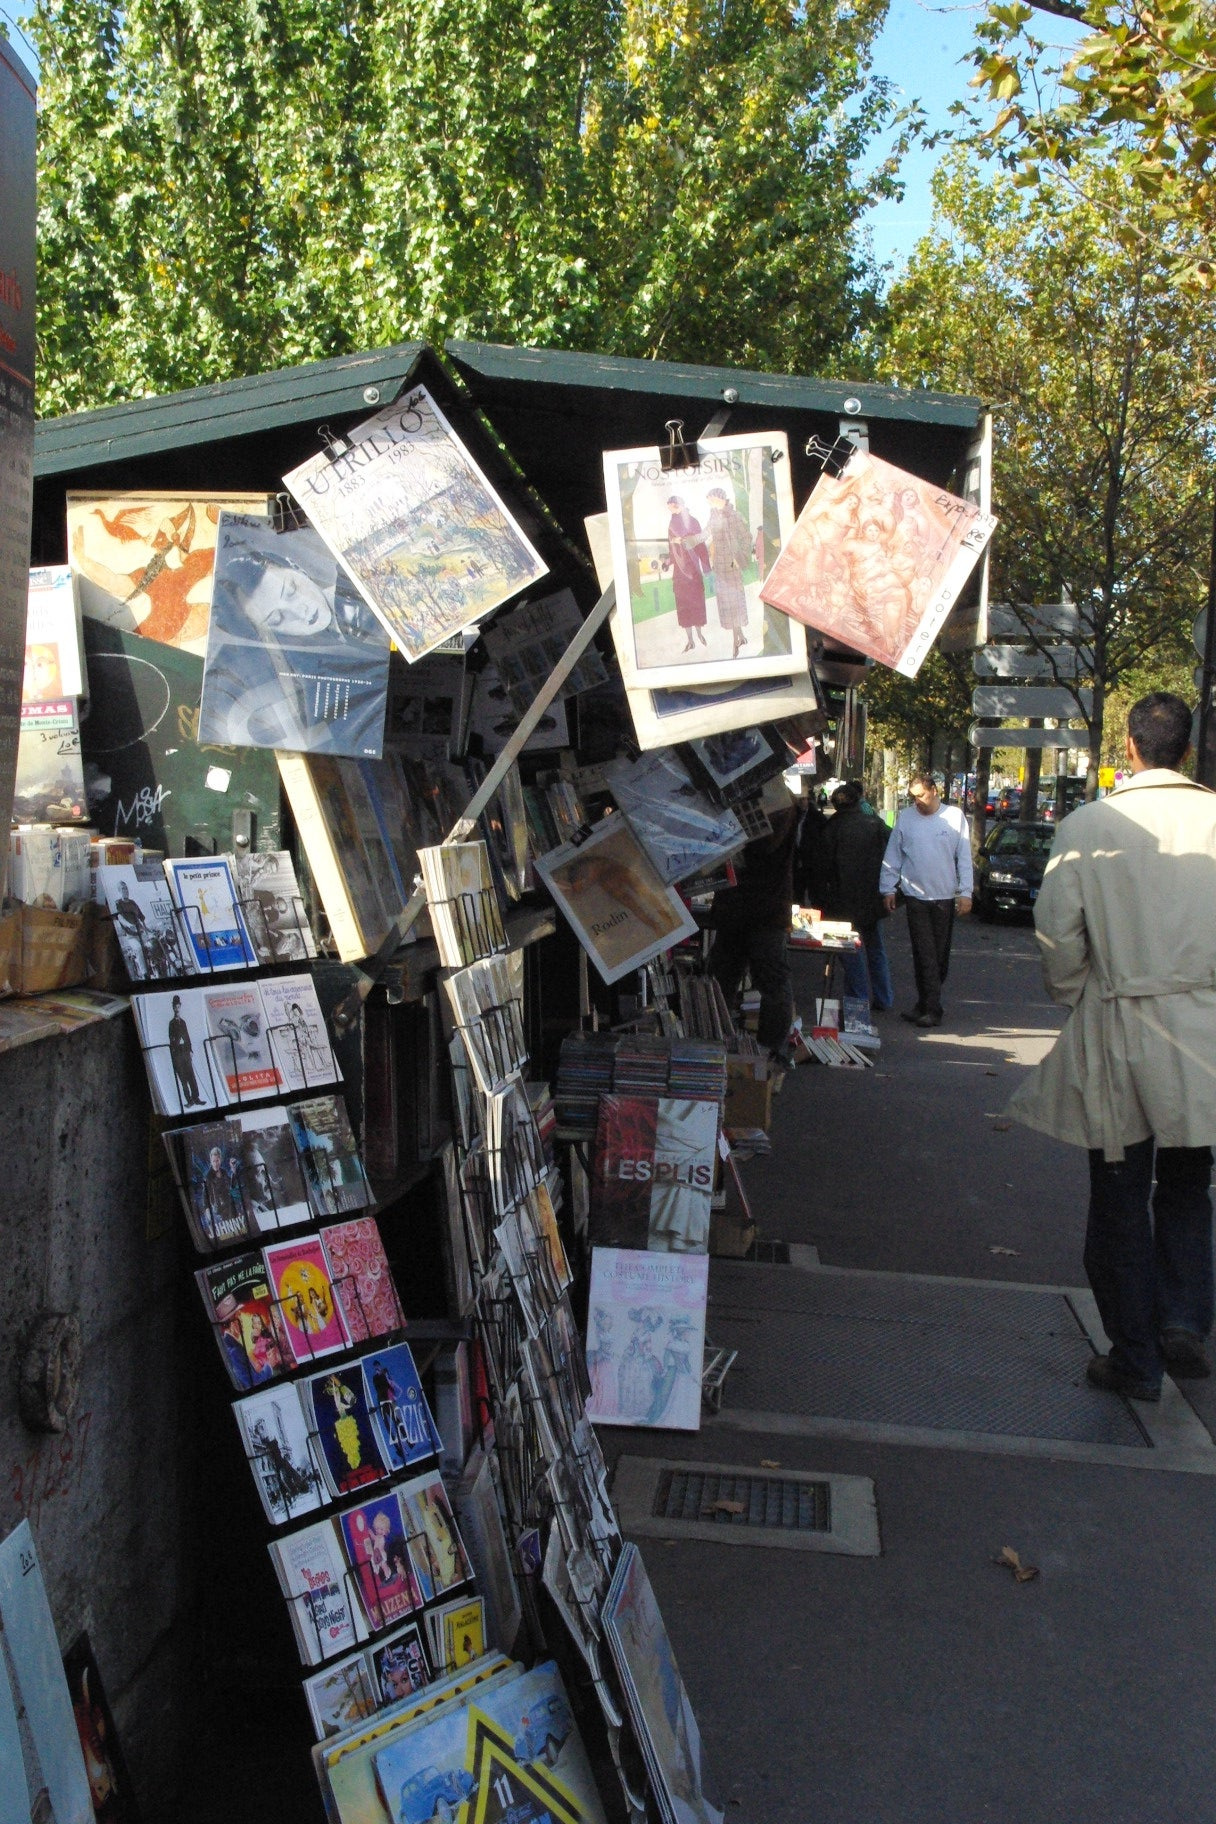 Mercado en Bouquinistes de Paris